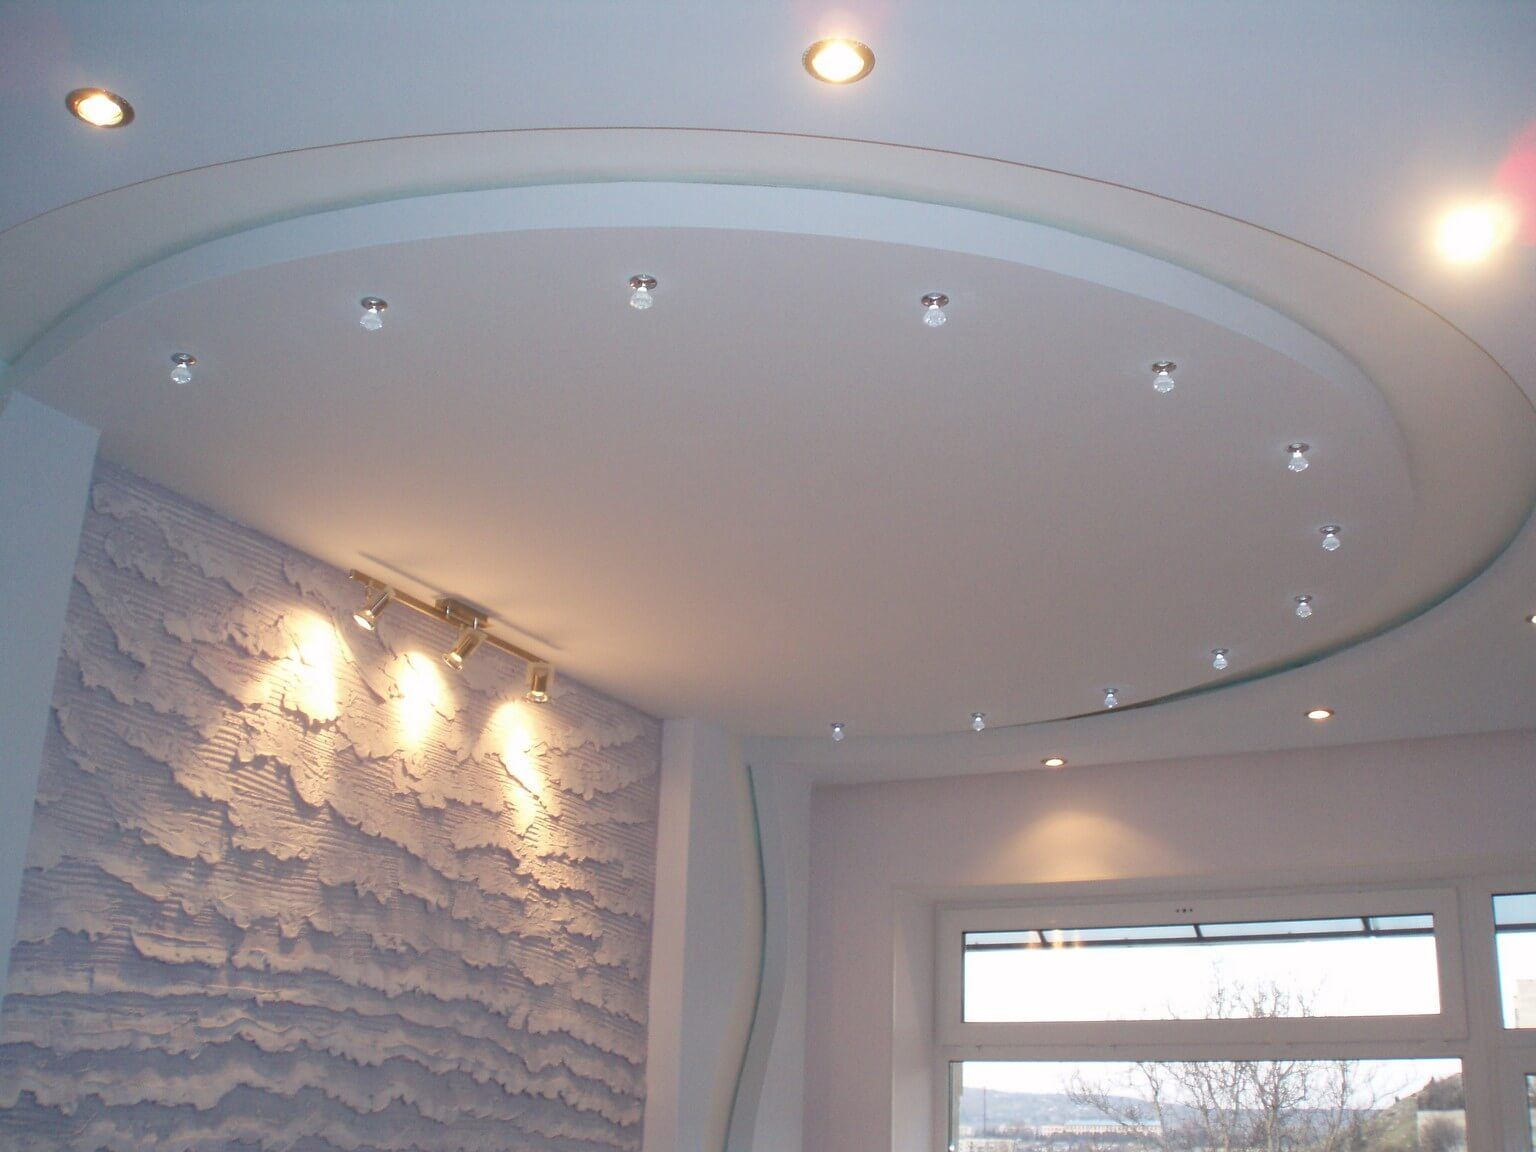 Simple Semi Circular Design Of The Plasterboard Ceiling And Unusal Structure Walls In